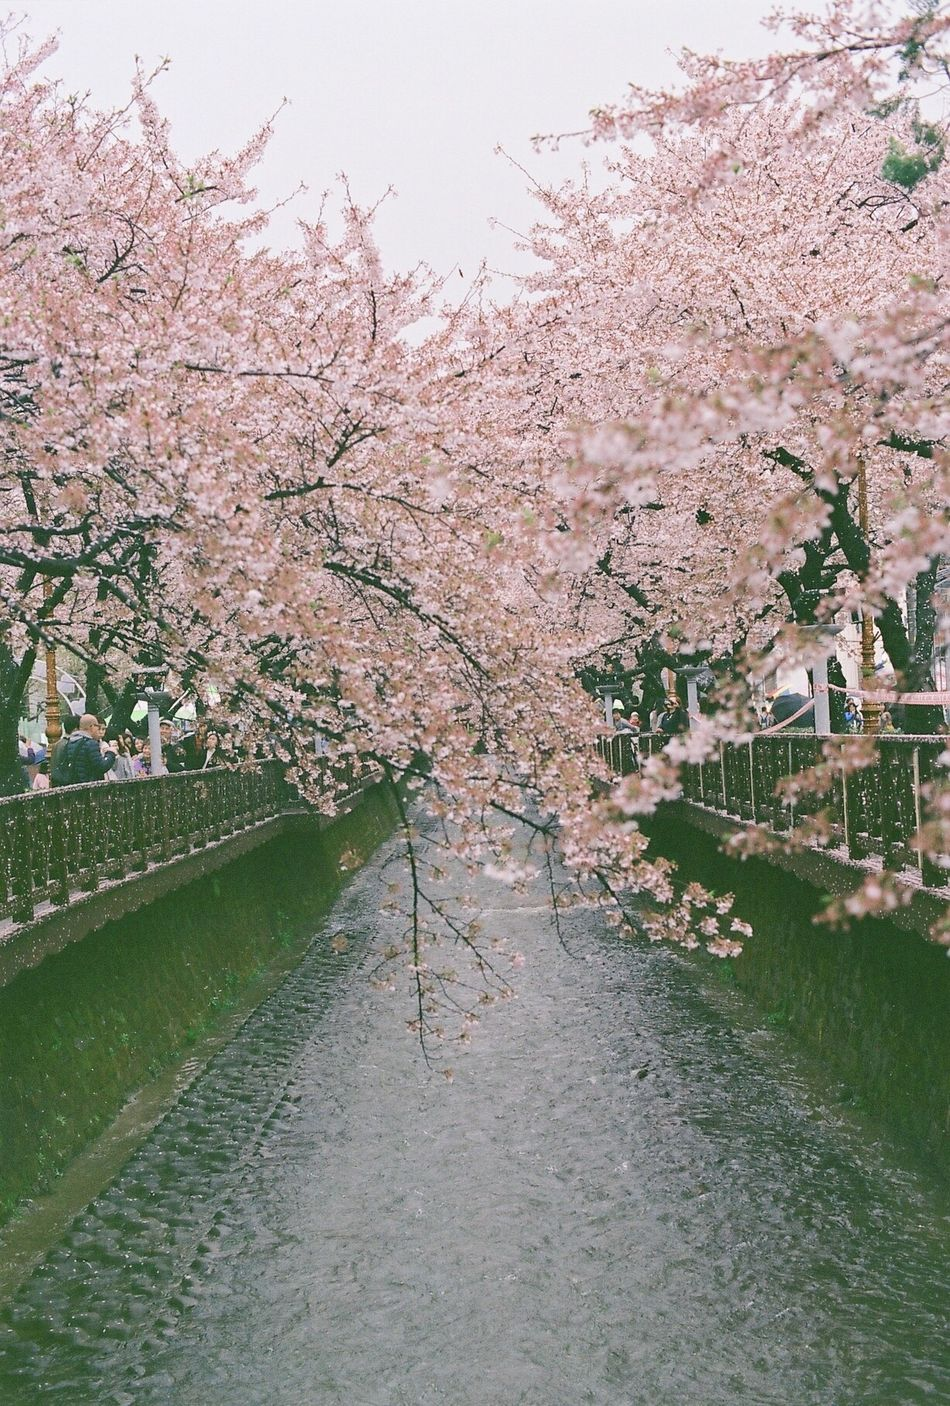 EyeEmbestshots Filmcamera Beauty In Nature Blossom Flower Nature Tree Springtime Outdoors Freshness River Pink Color EyeEm Best Shots Film EyeEm Analogue Photography Freshness Spring Eyeemphotography Beauty In Nature Streetphotography Filmisnotdead NoEditNoFilter Analog Filmphotography